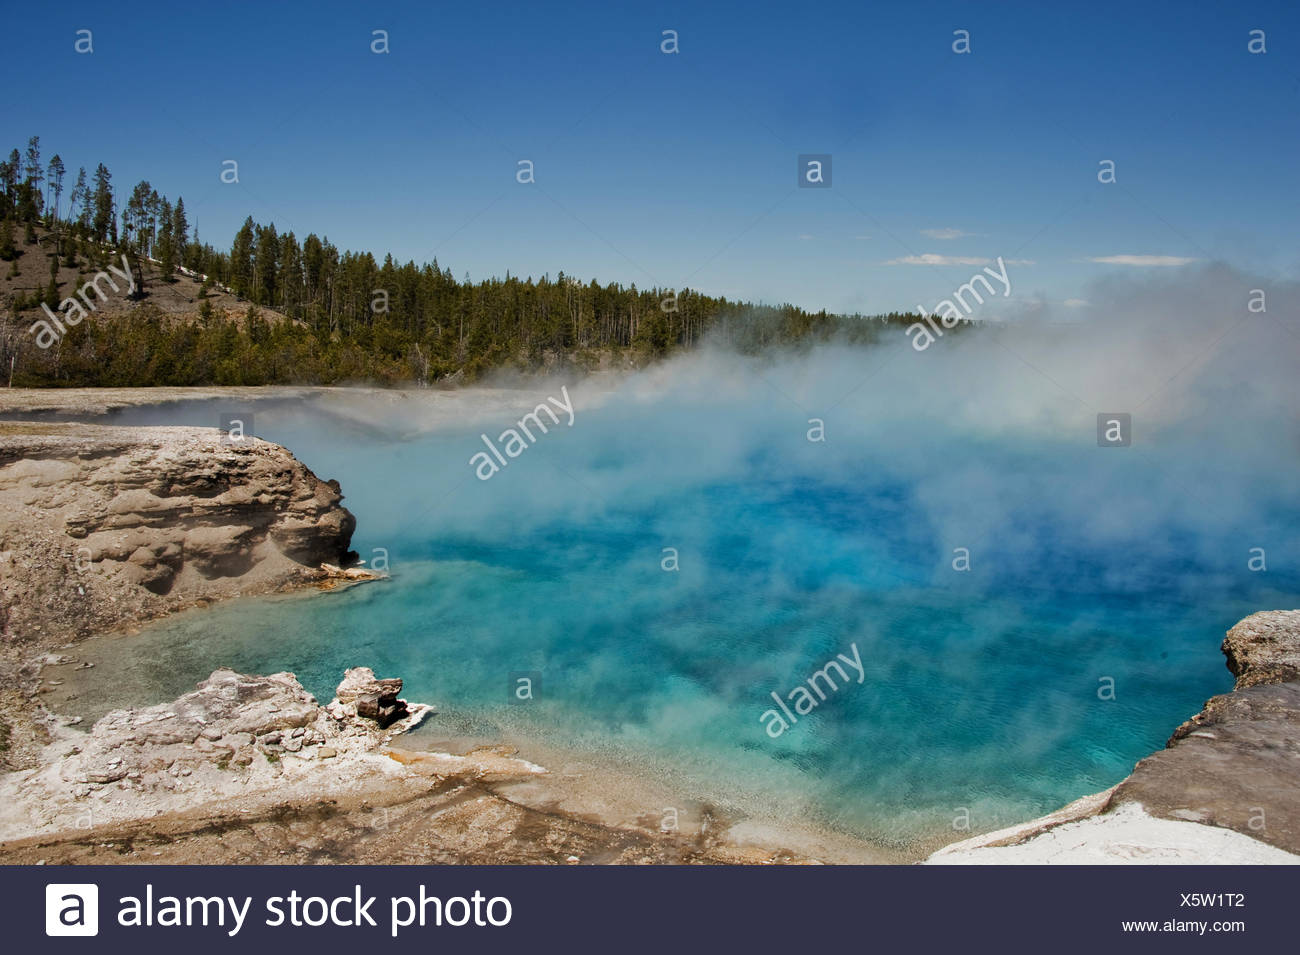 USA, Montana, Wyoming, Yellowstone National Park, Hot water vapor in national park - Stock Image